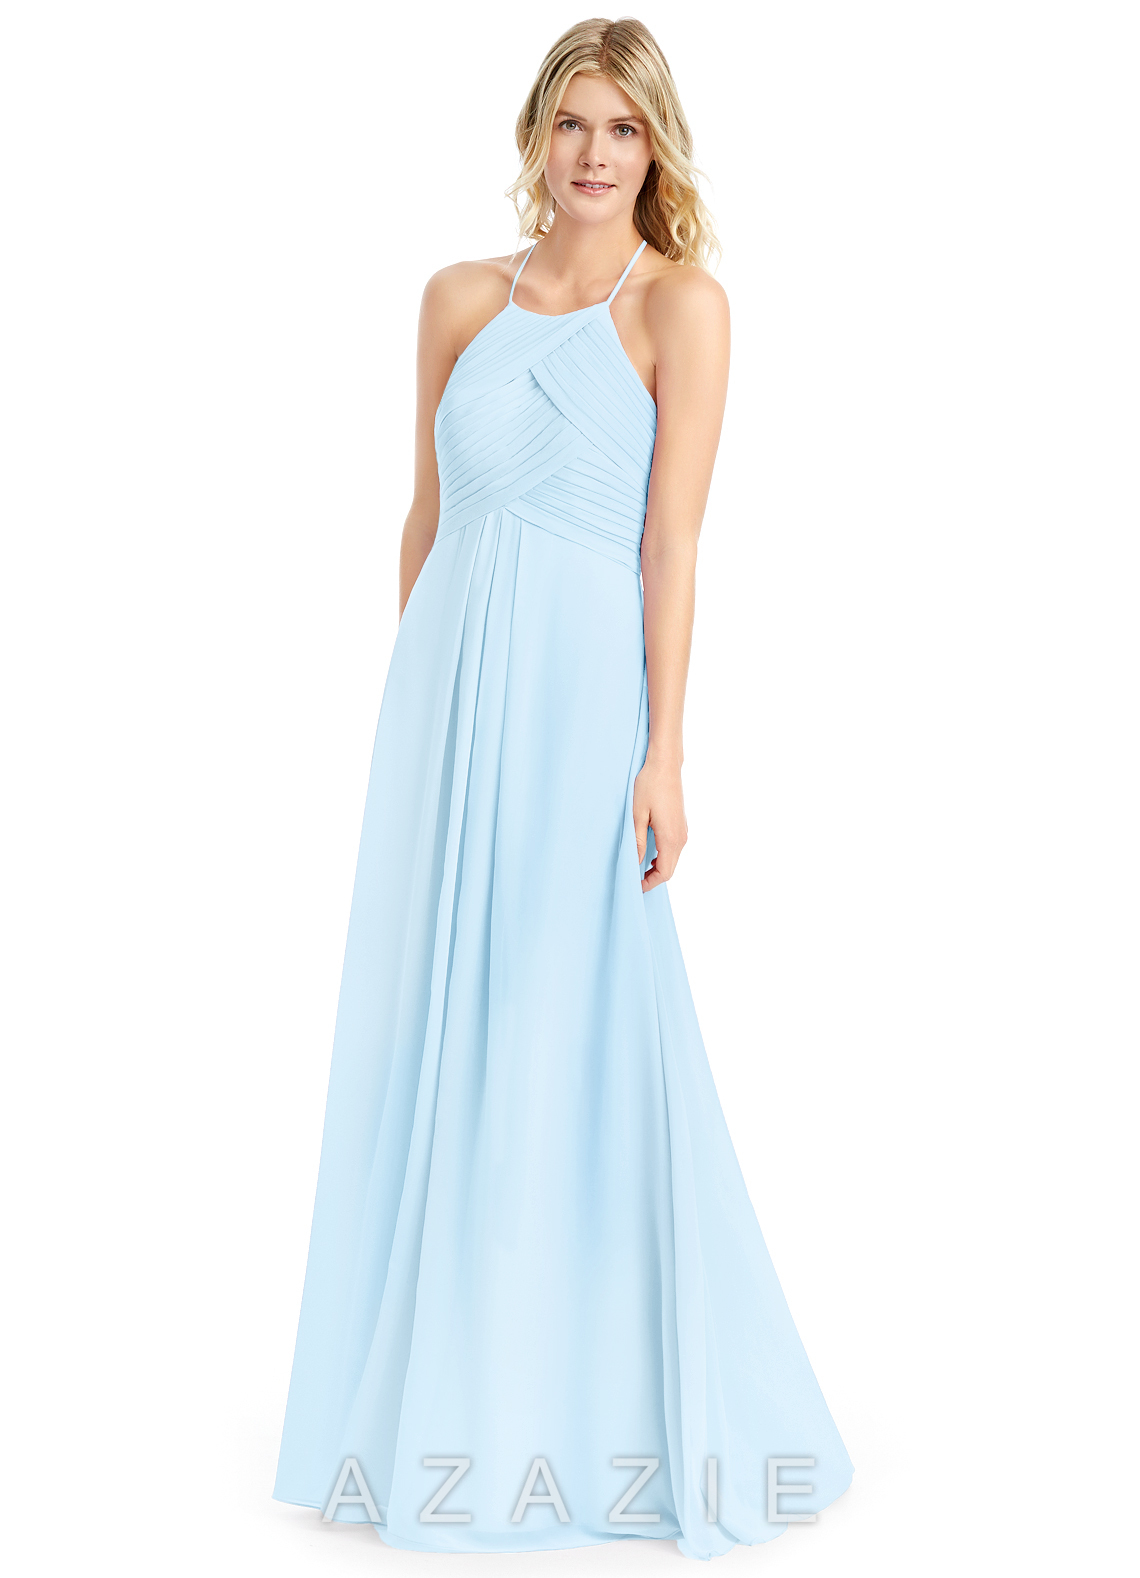 2111019328a Azazie Ginger Bridesmaid Dress - Sky Blue